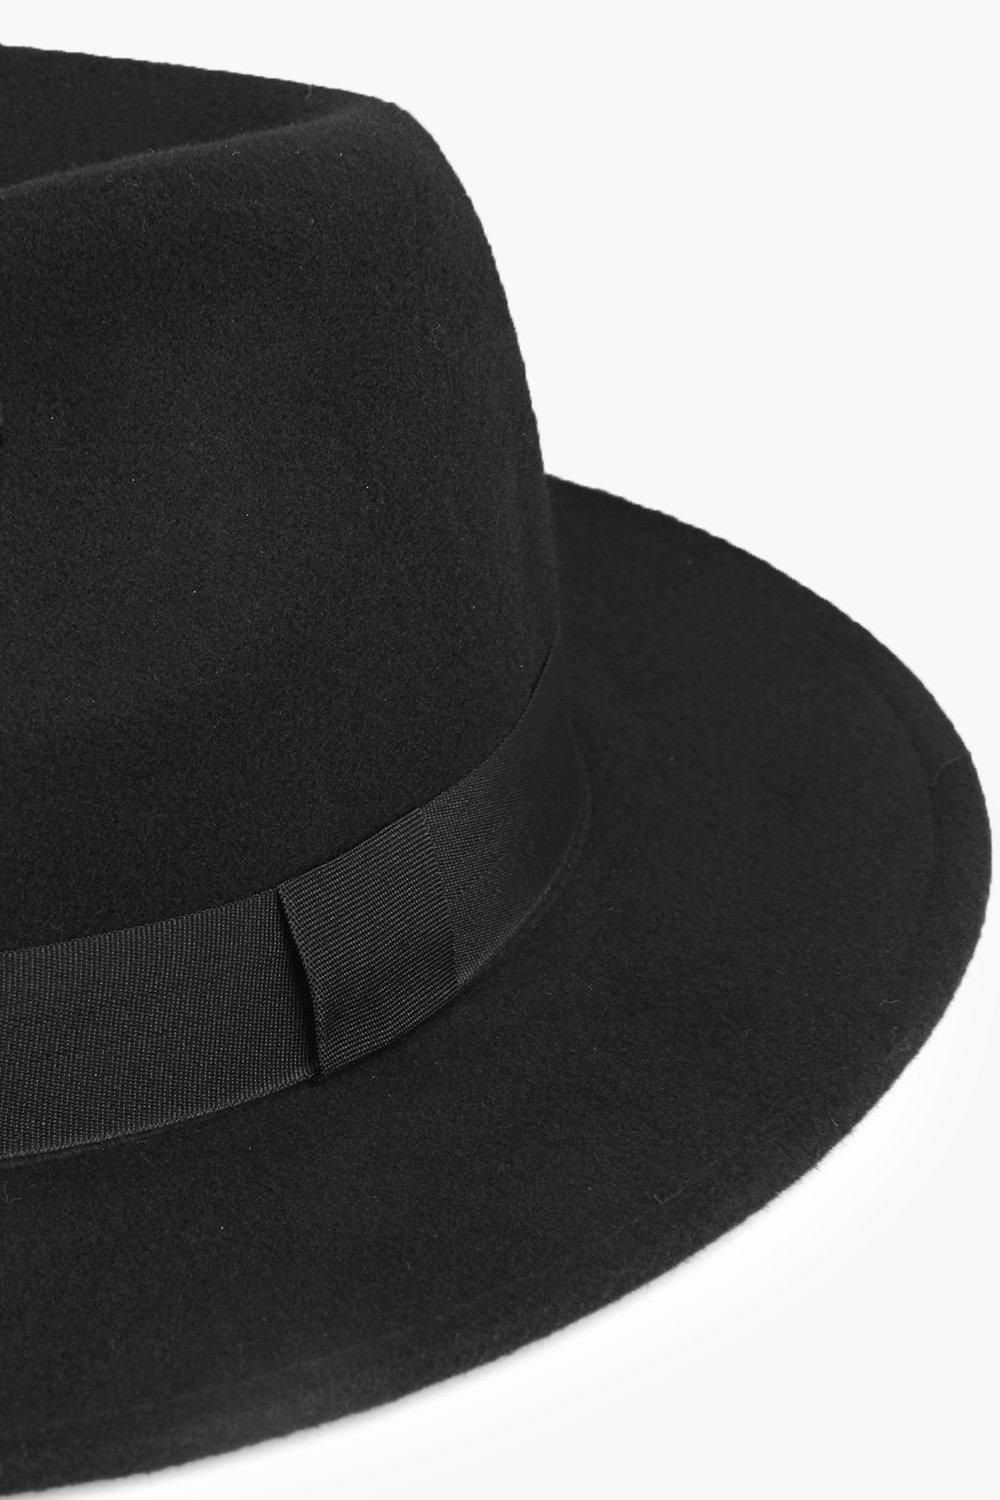 pictures Fedora Hats To Instantly Update Your Look